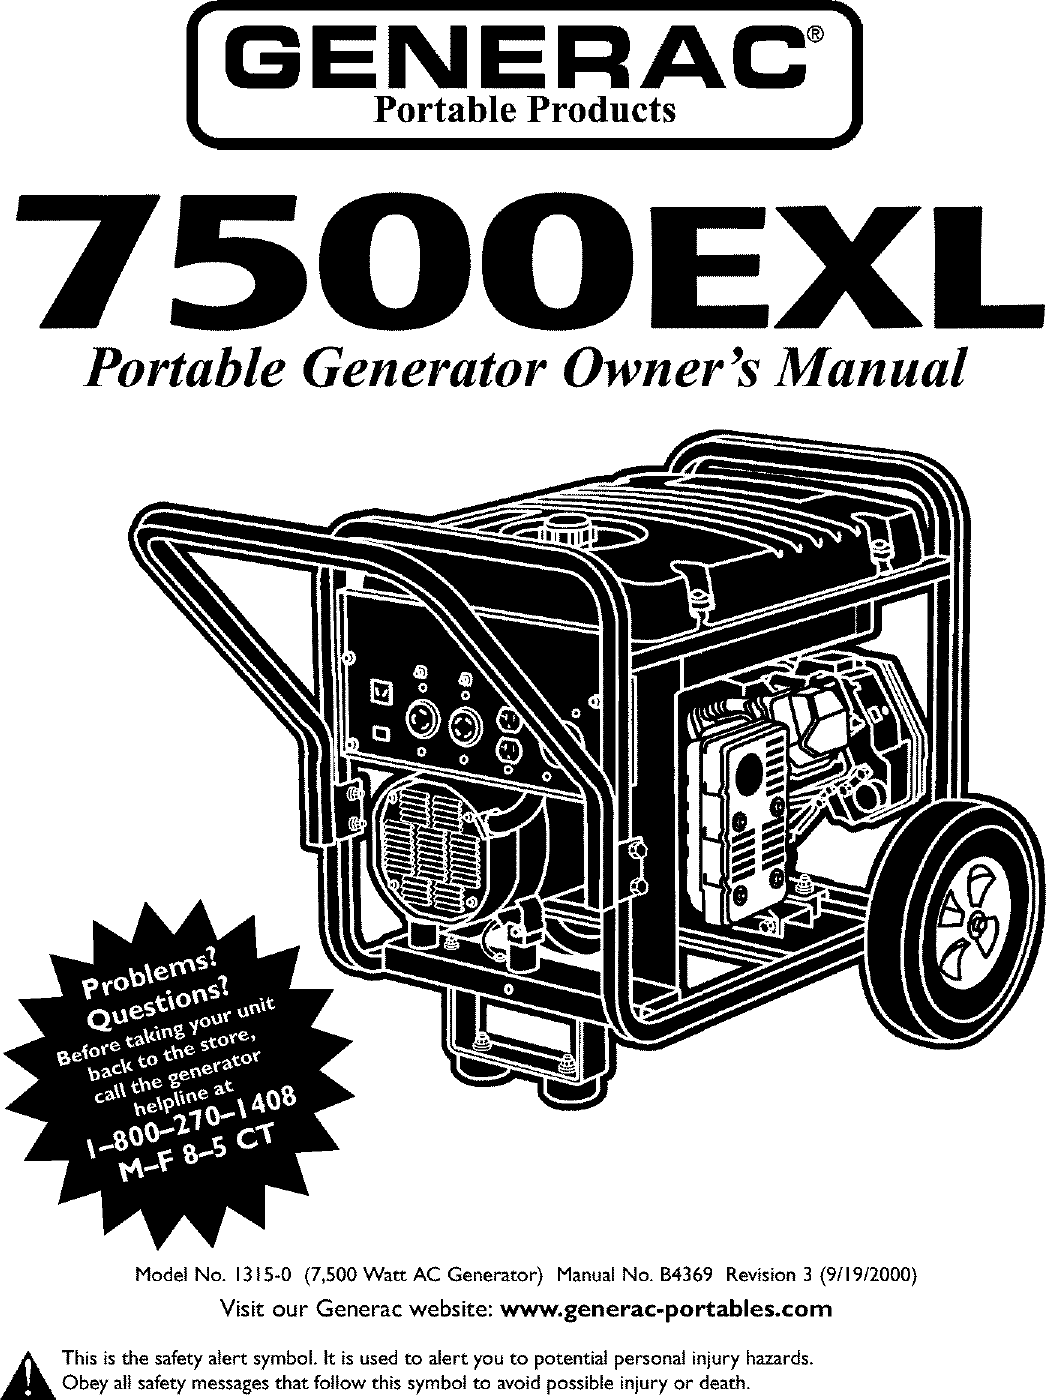 Generac 1315 0 User Manual GENERATOR Manuals And Guides